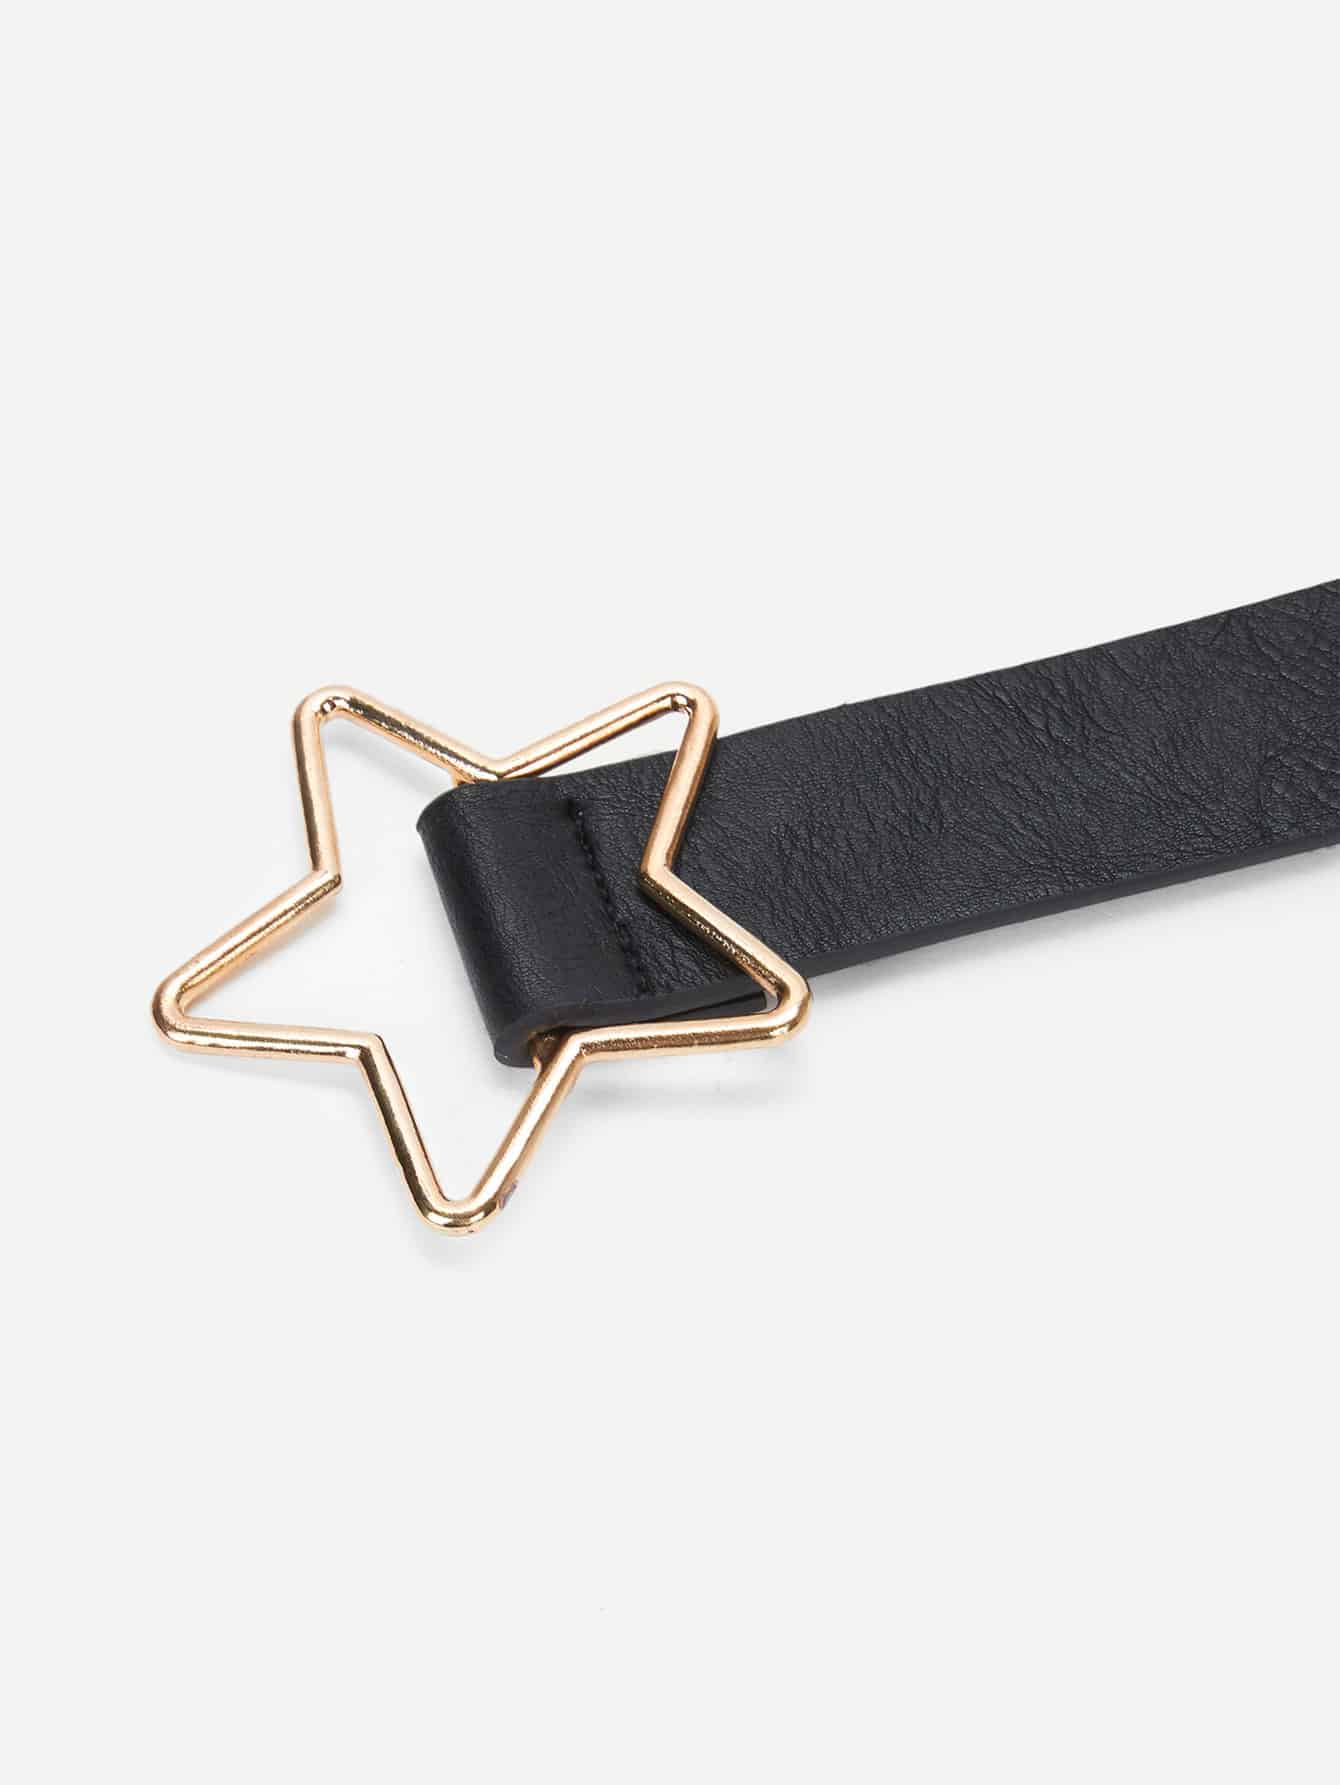 Metal Star Shaped Buckle Belt - FLJ CORPORATIONS